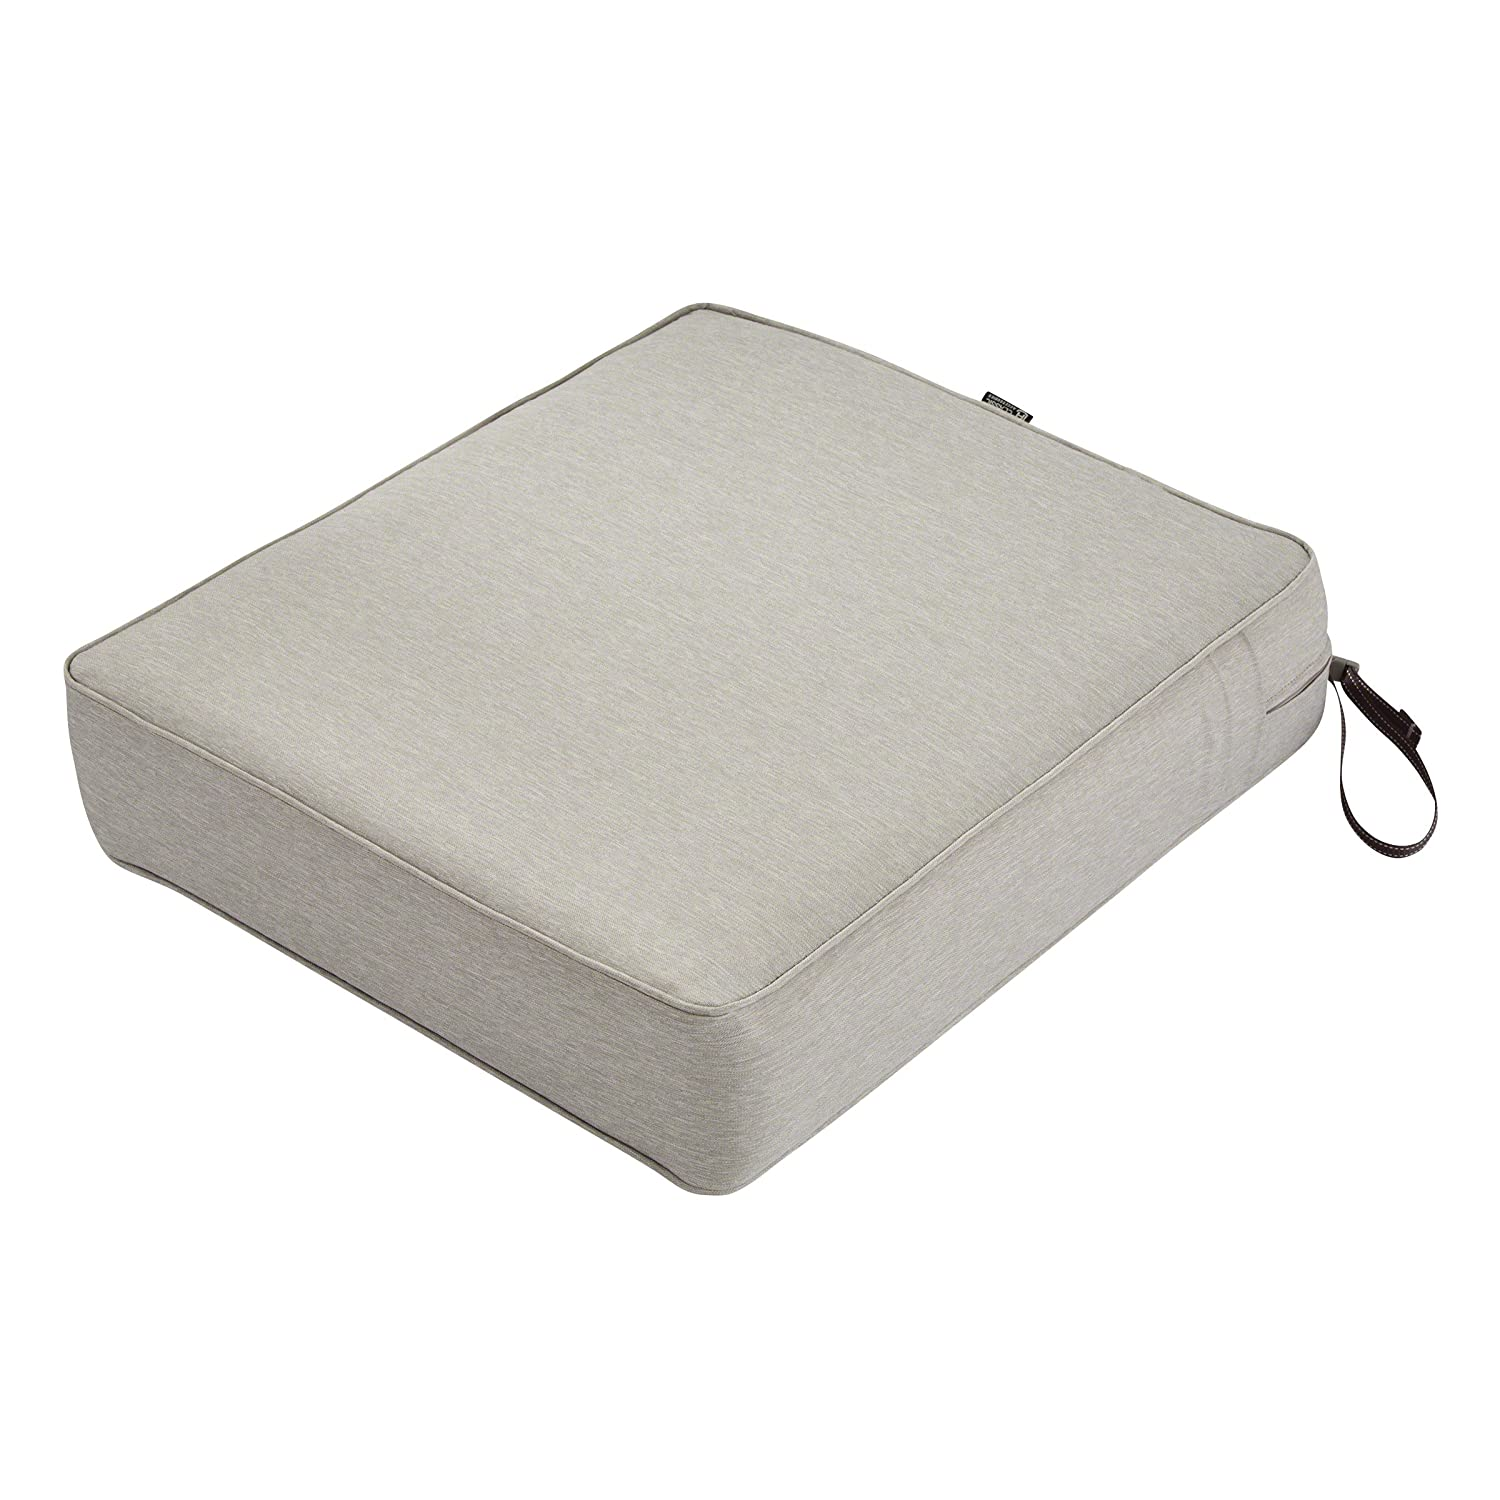 Classic Accessories Montlake Seat Cushion Foam Slip Cover, Heather Grey, 25x27x5 Thick